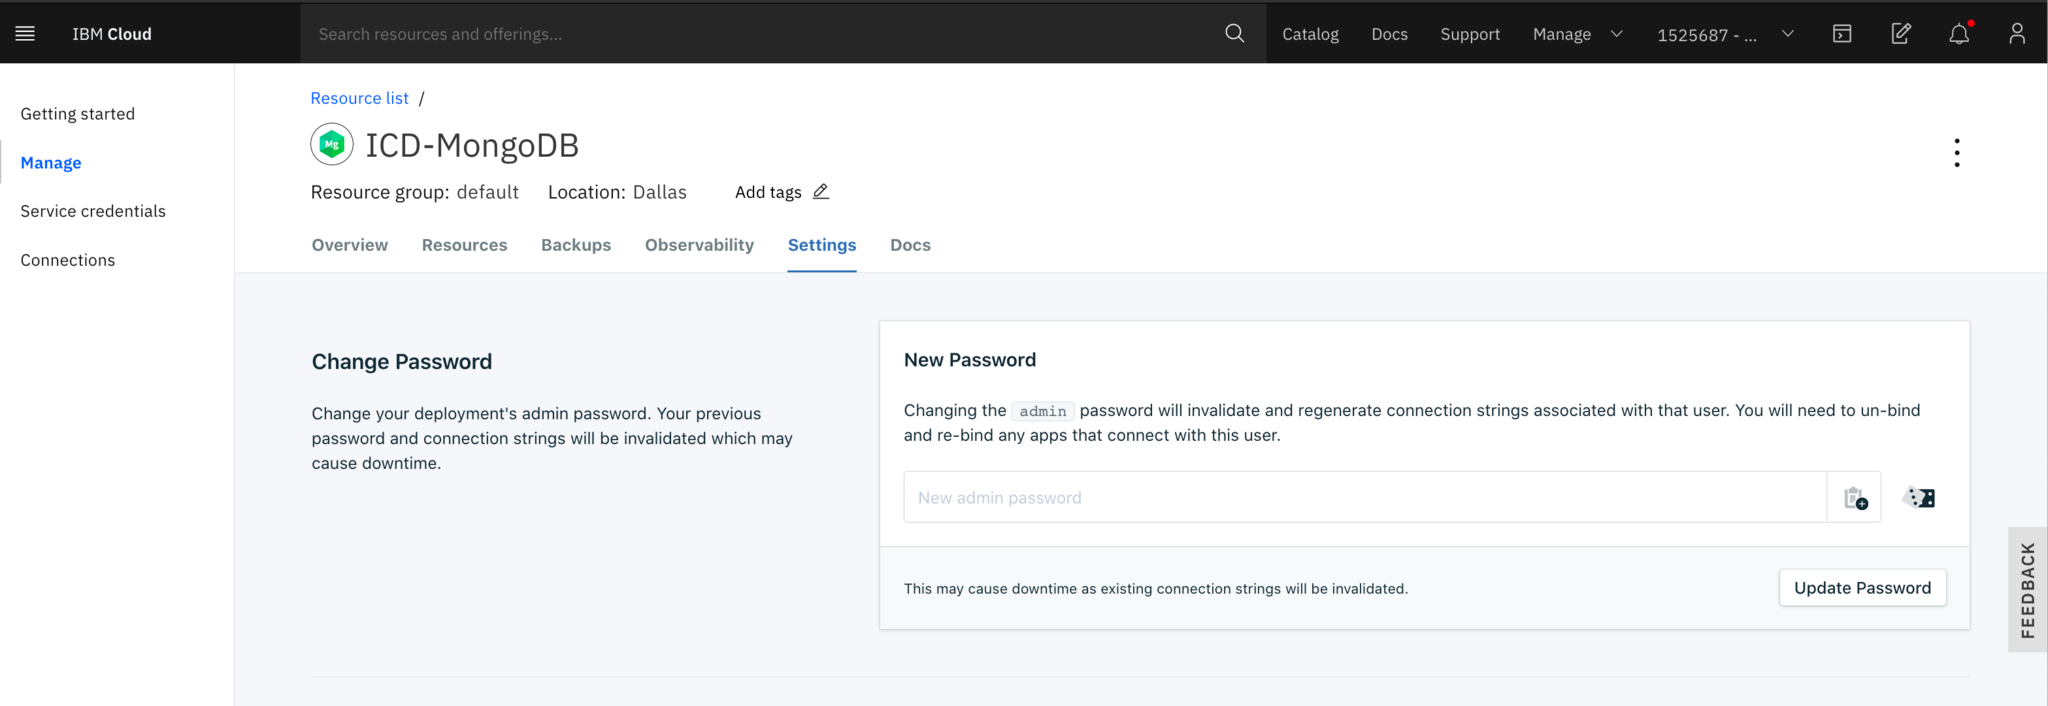 After the provisioning has finished, you'll be able to access your new database. Remember to change the administrator password of the new database by selecting the Settings tab and creating a new password: